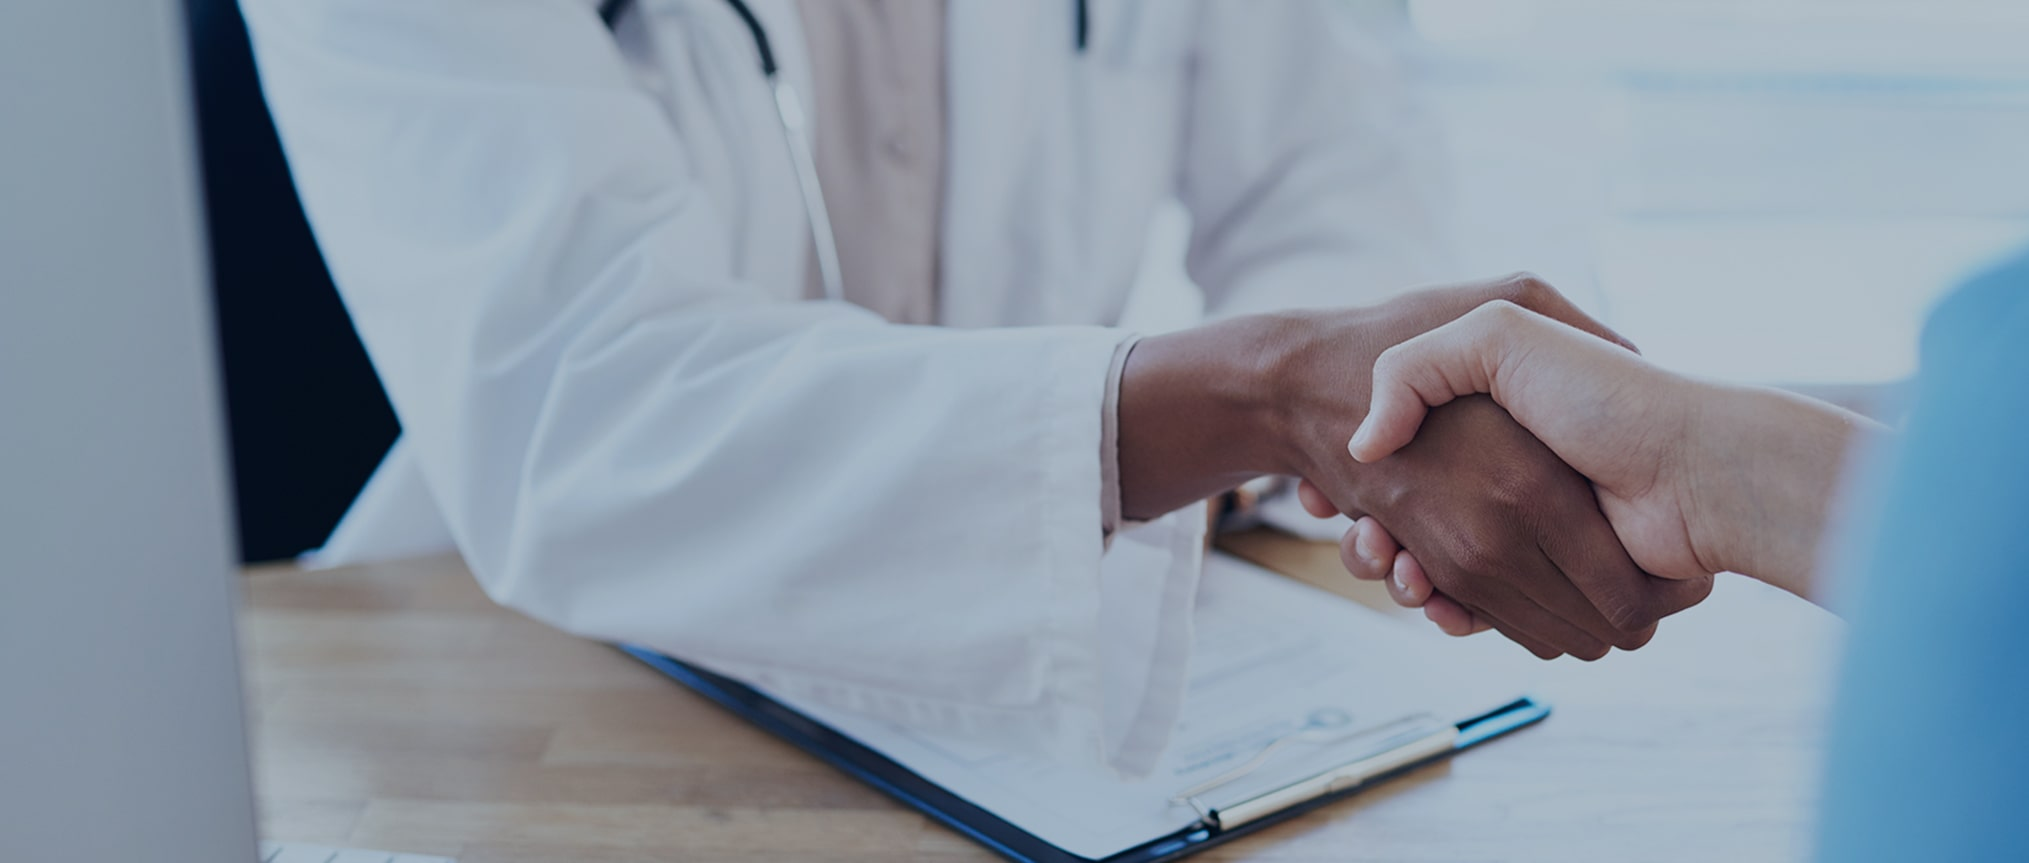 Patient-and-Doctor-Handshake